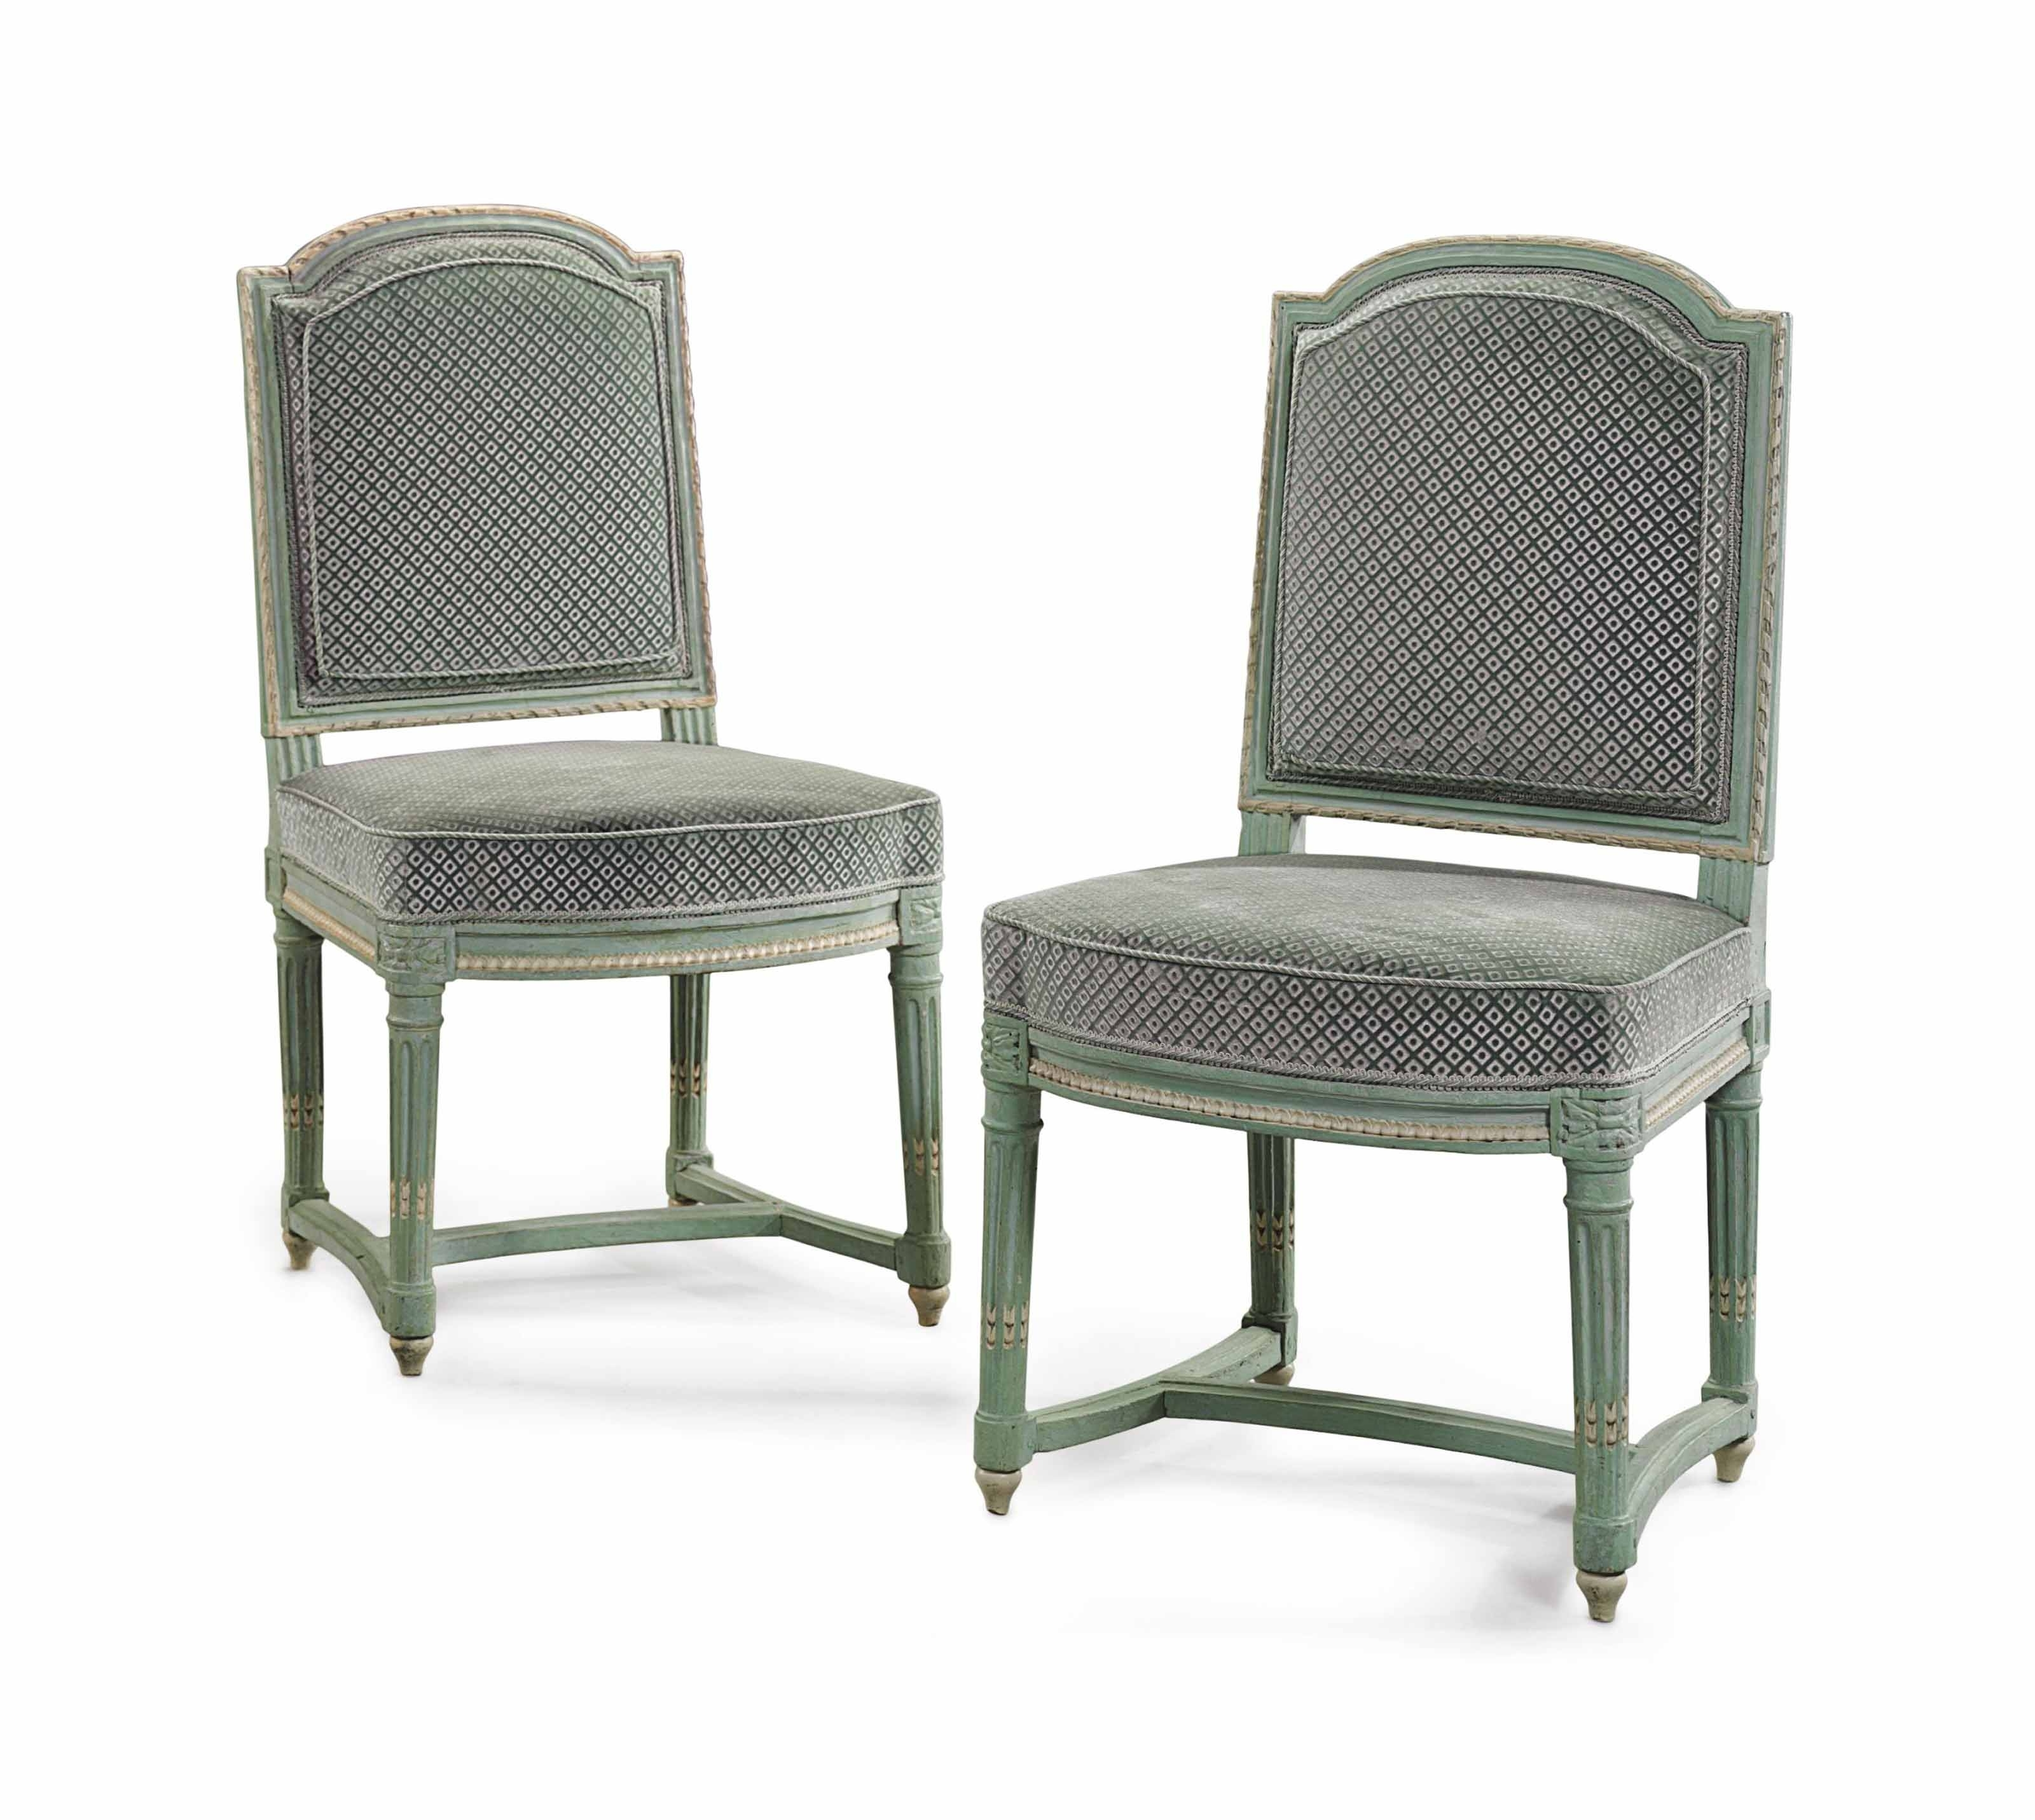 Most Current Green Chaises Intended For A Pair Of Royal Louis Xvi Green And White Painted Chaisesjean (View 12 of 15)